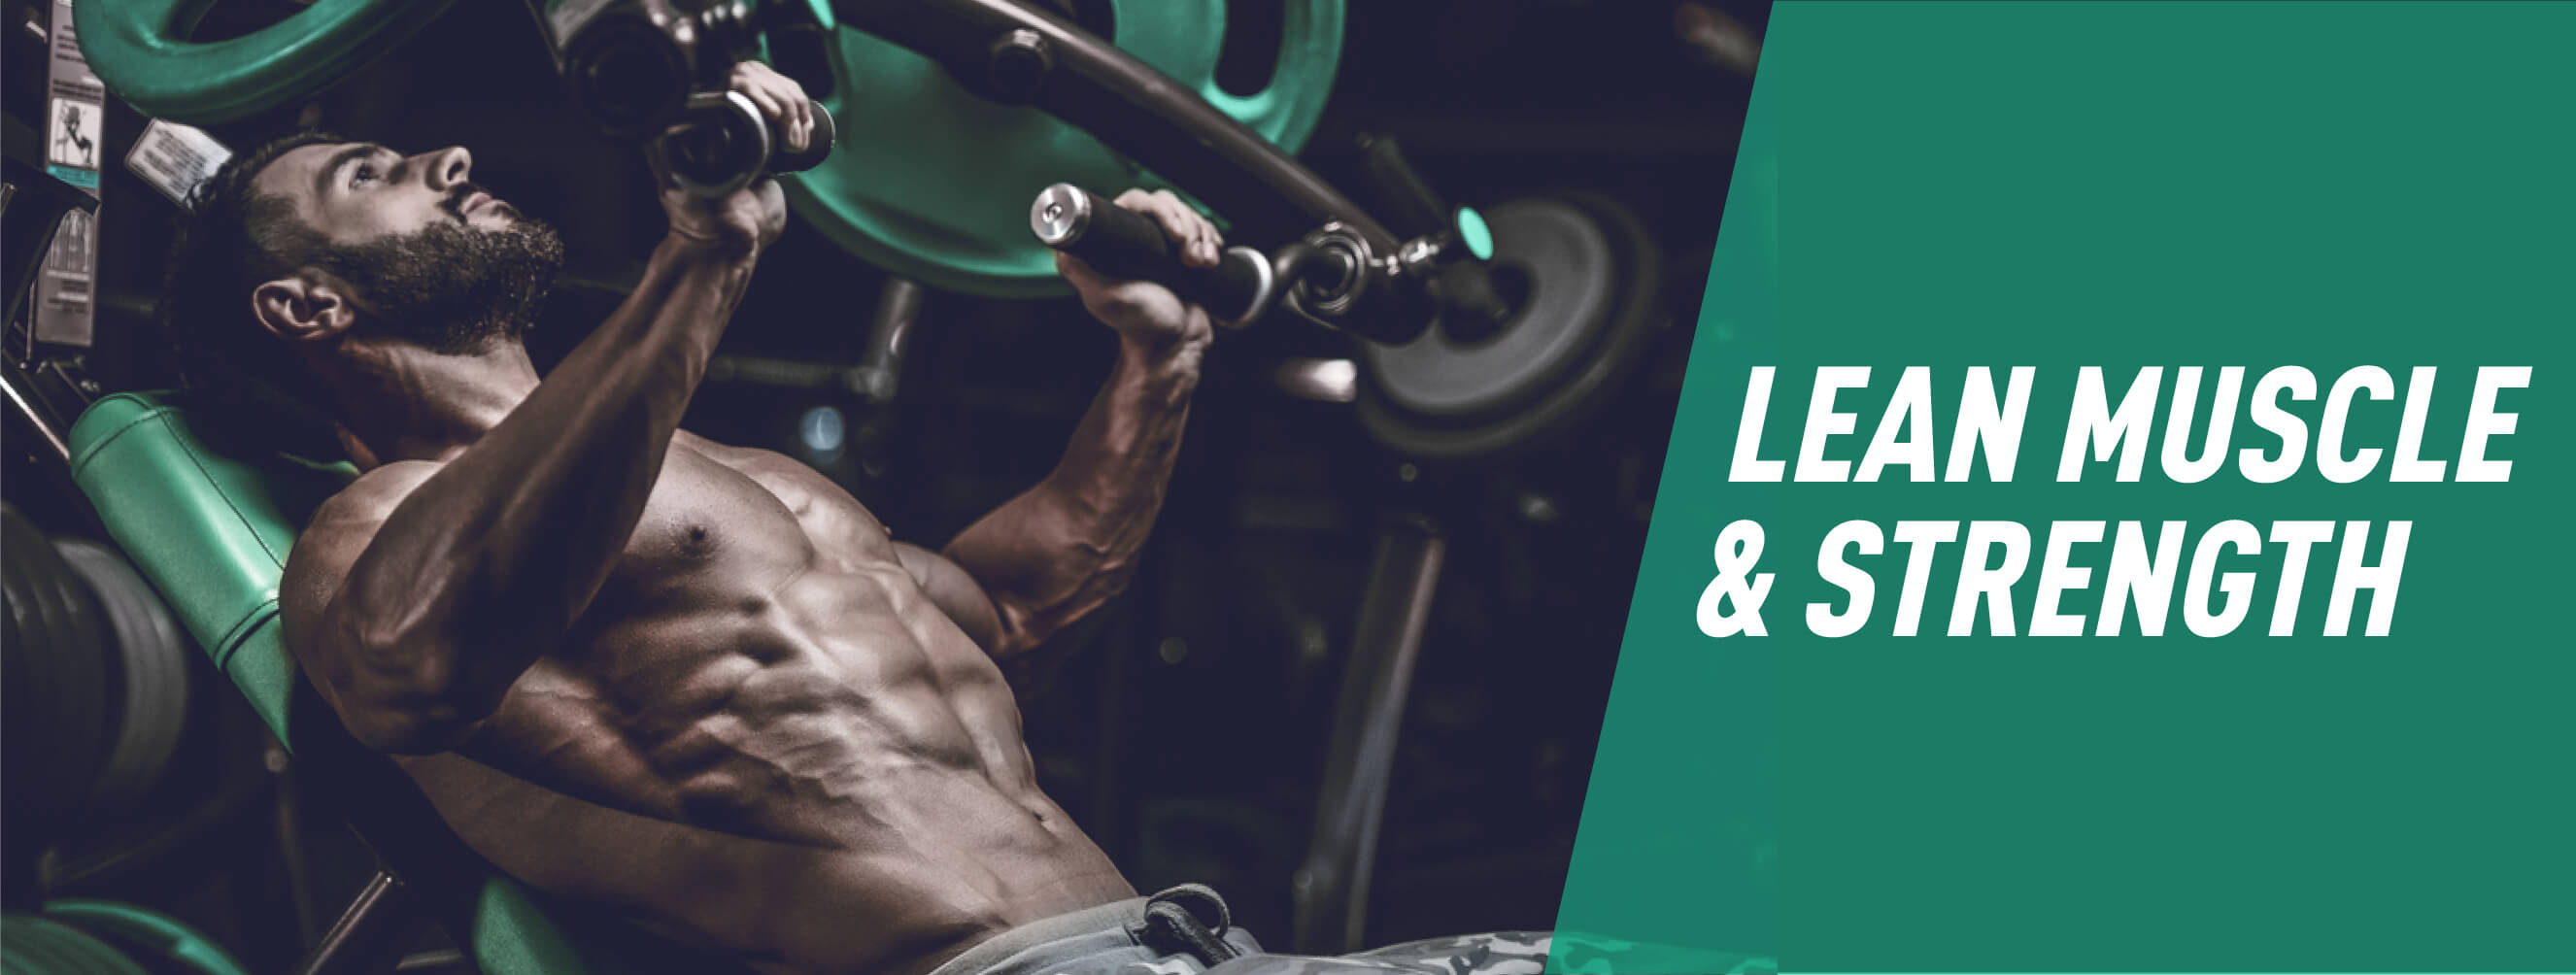 Lean Muscle & Strength - Online Programme